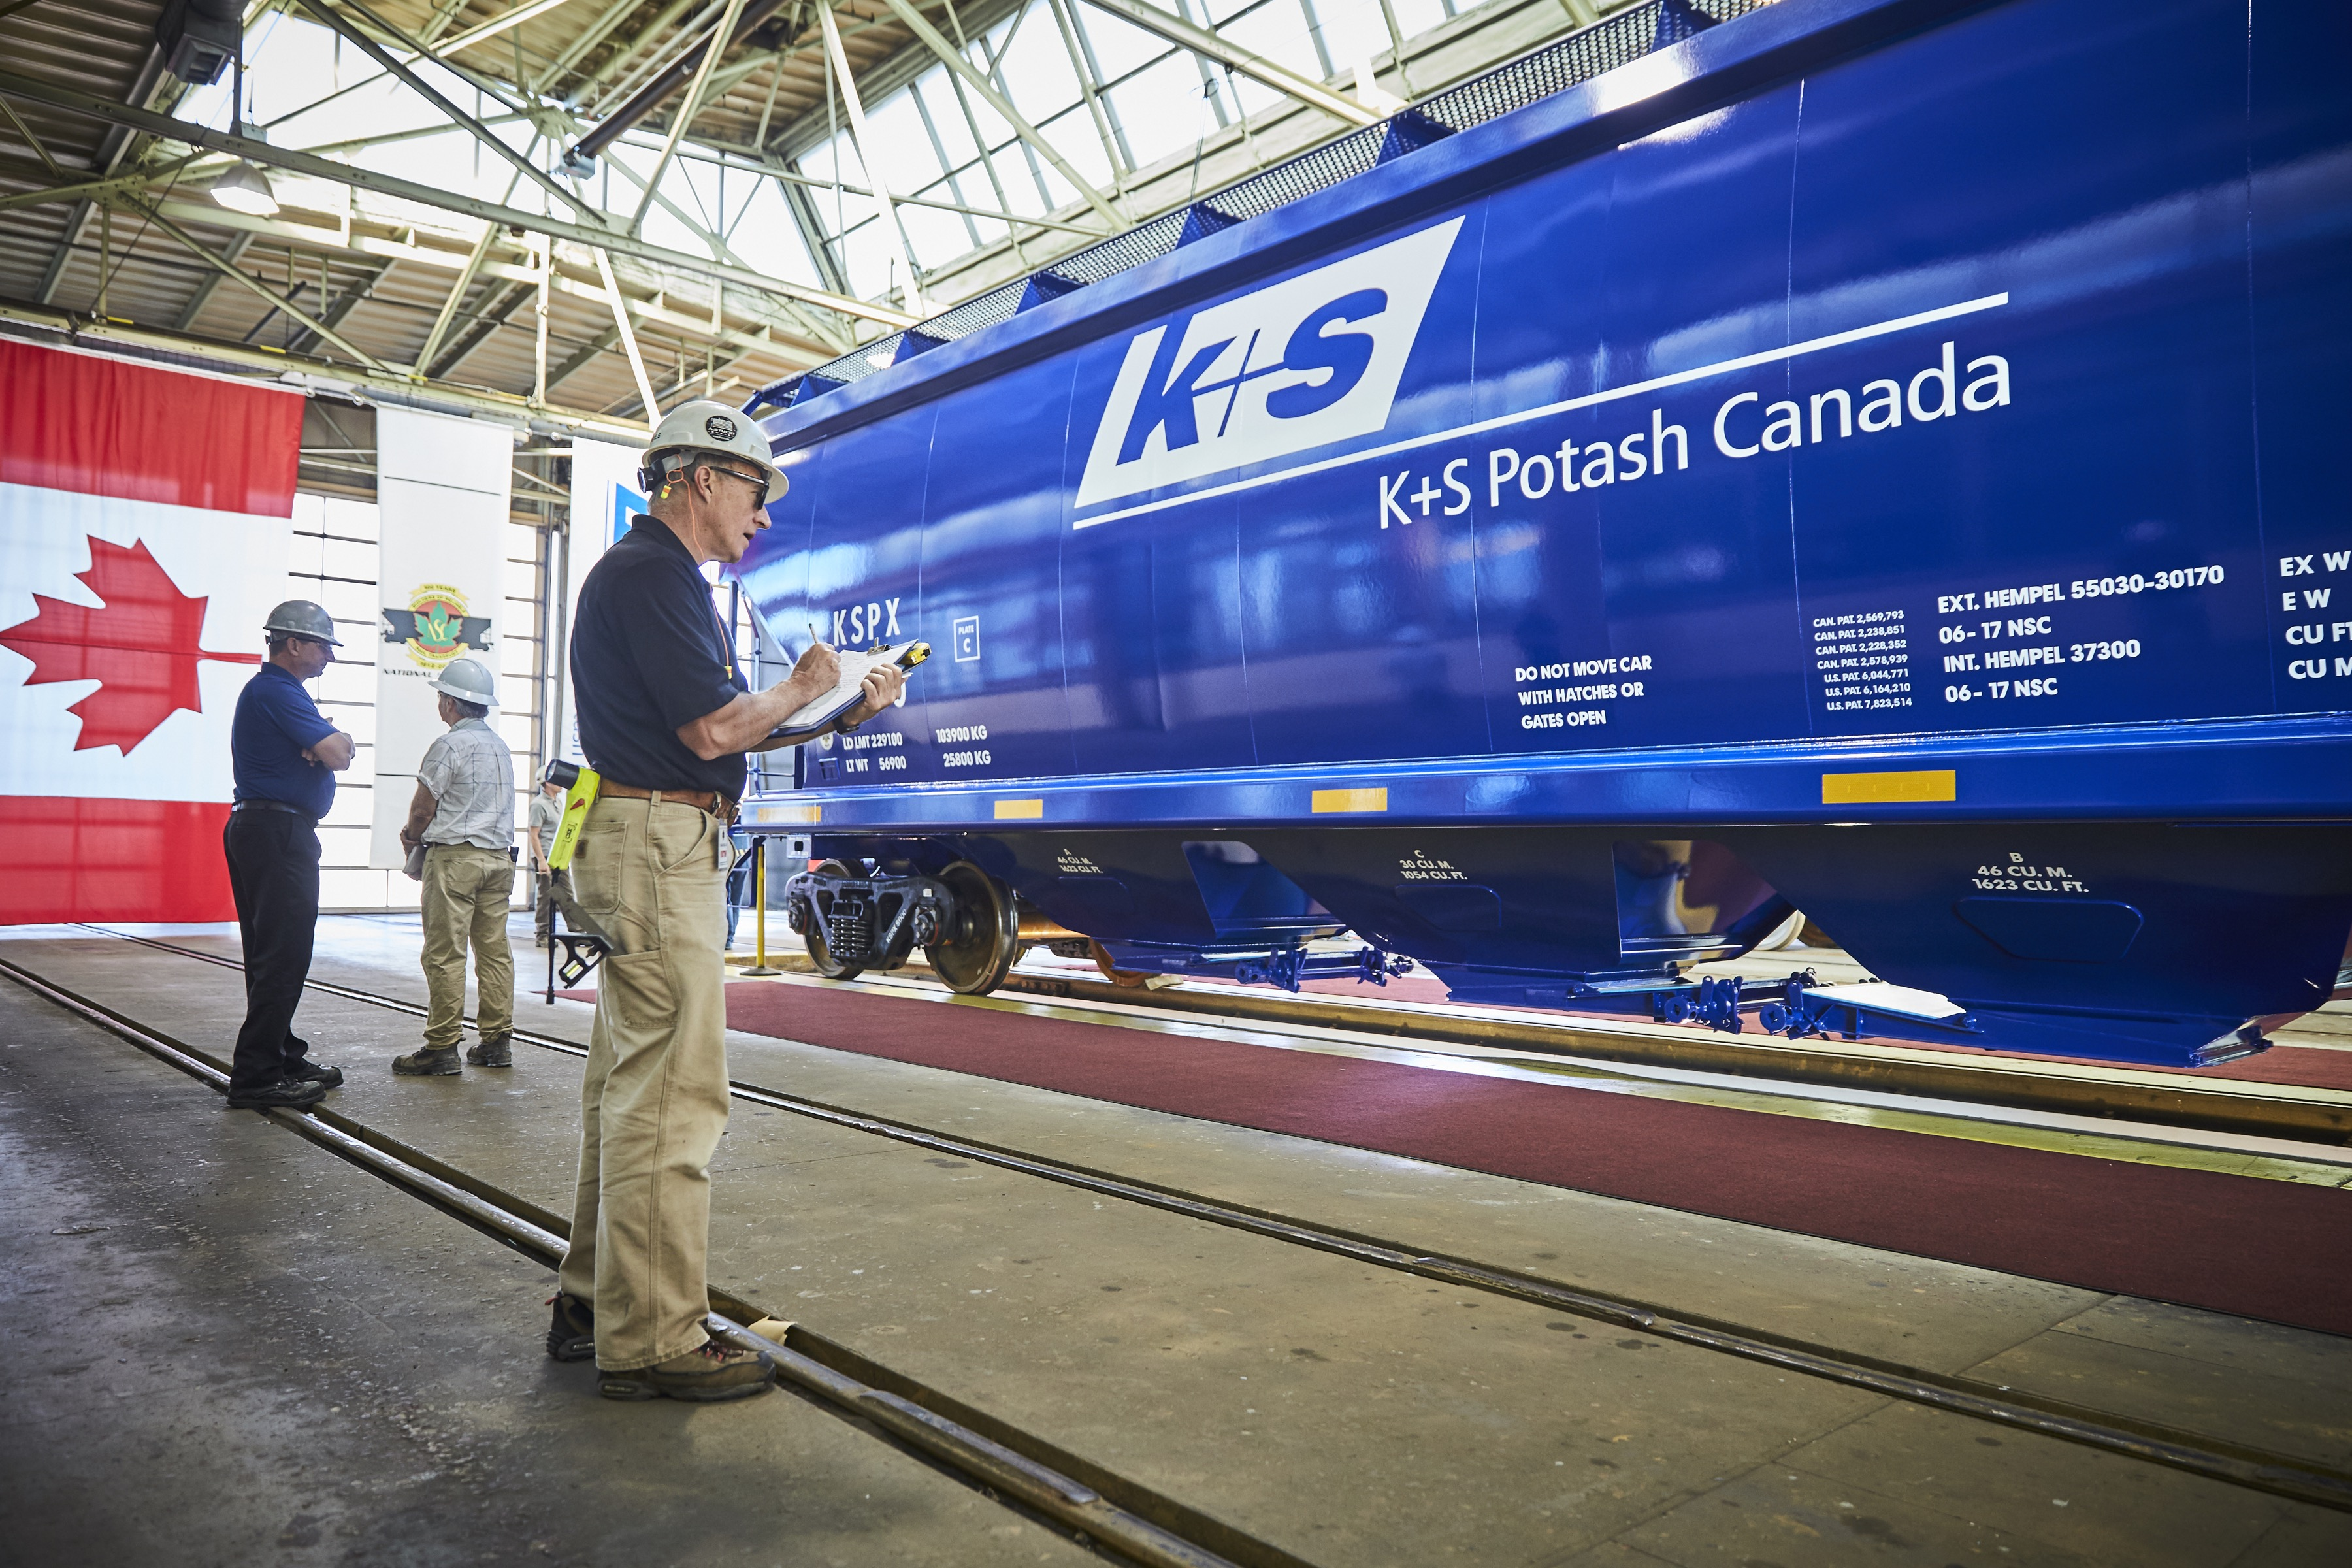 K+S Potash Canada ready to serve North American market as new domestic rail cars are delivered